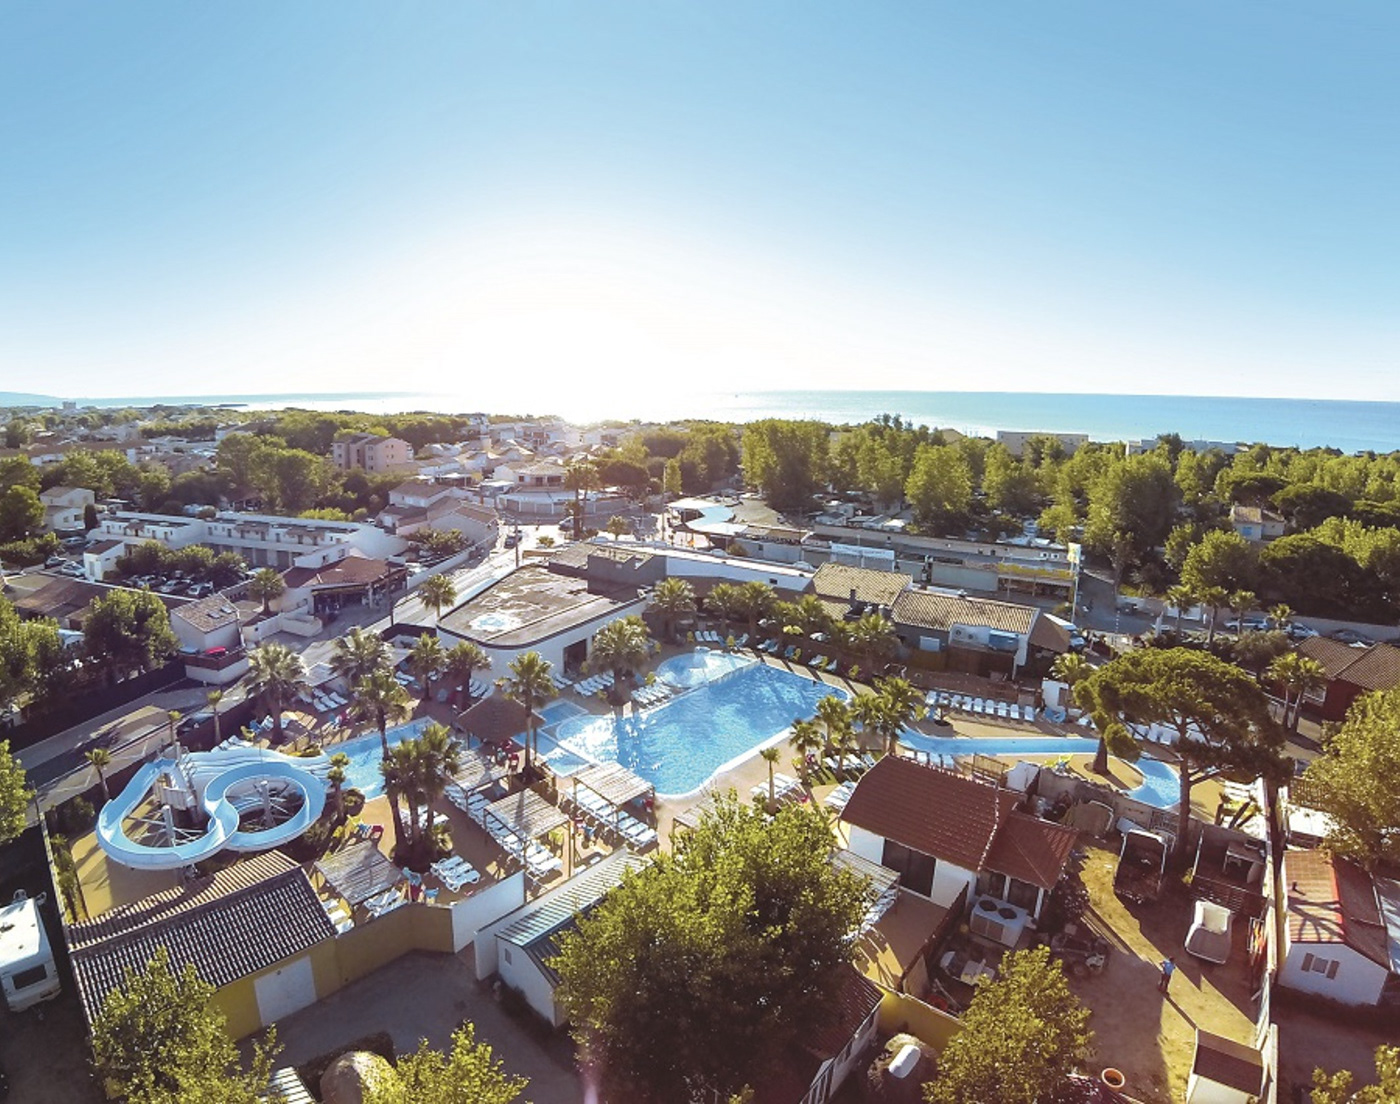 camping campsite france luxury Riviera tourism Travel